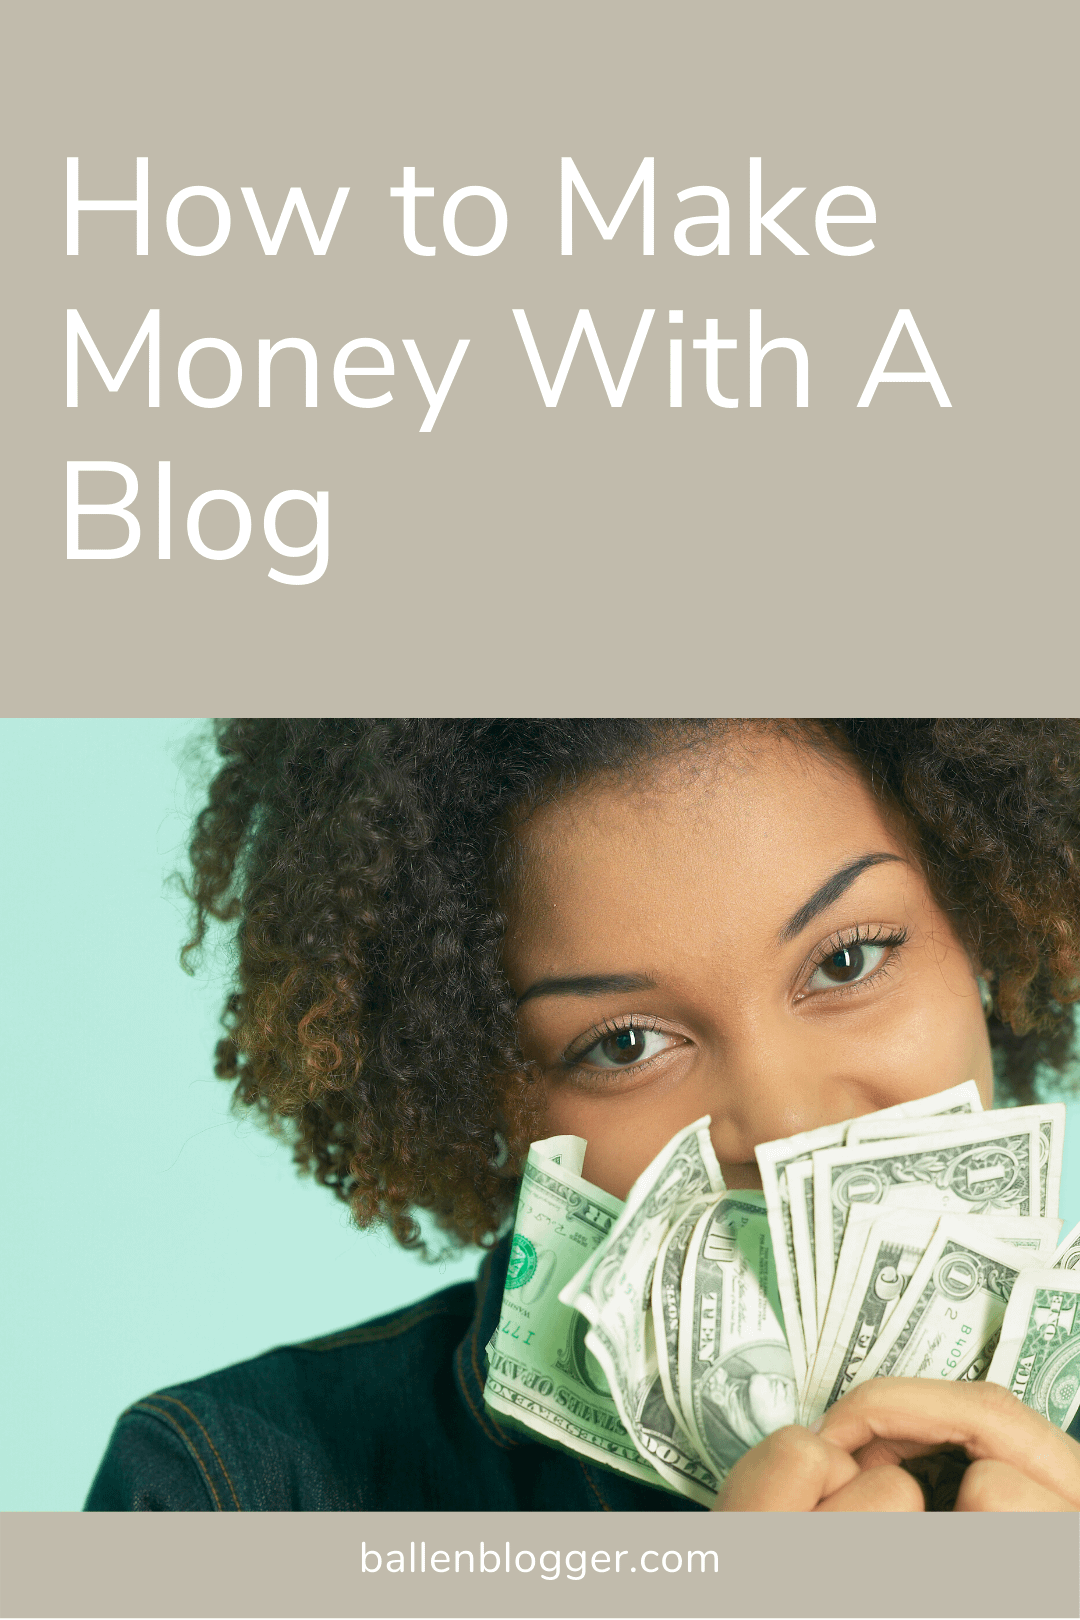 If you are blogging on a regular basis, you might want to know how to make money with your blog. Many bloggers have figured out ways to monetize their blog as a supplemental income or as a full-time income. This article will give you ideas on how to make money with your blog.